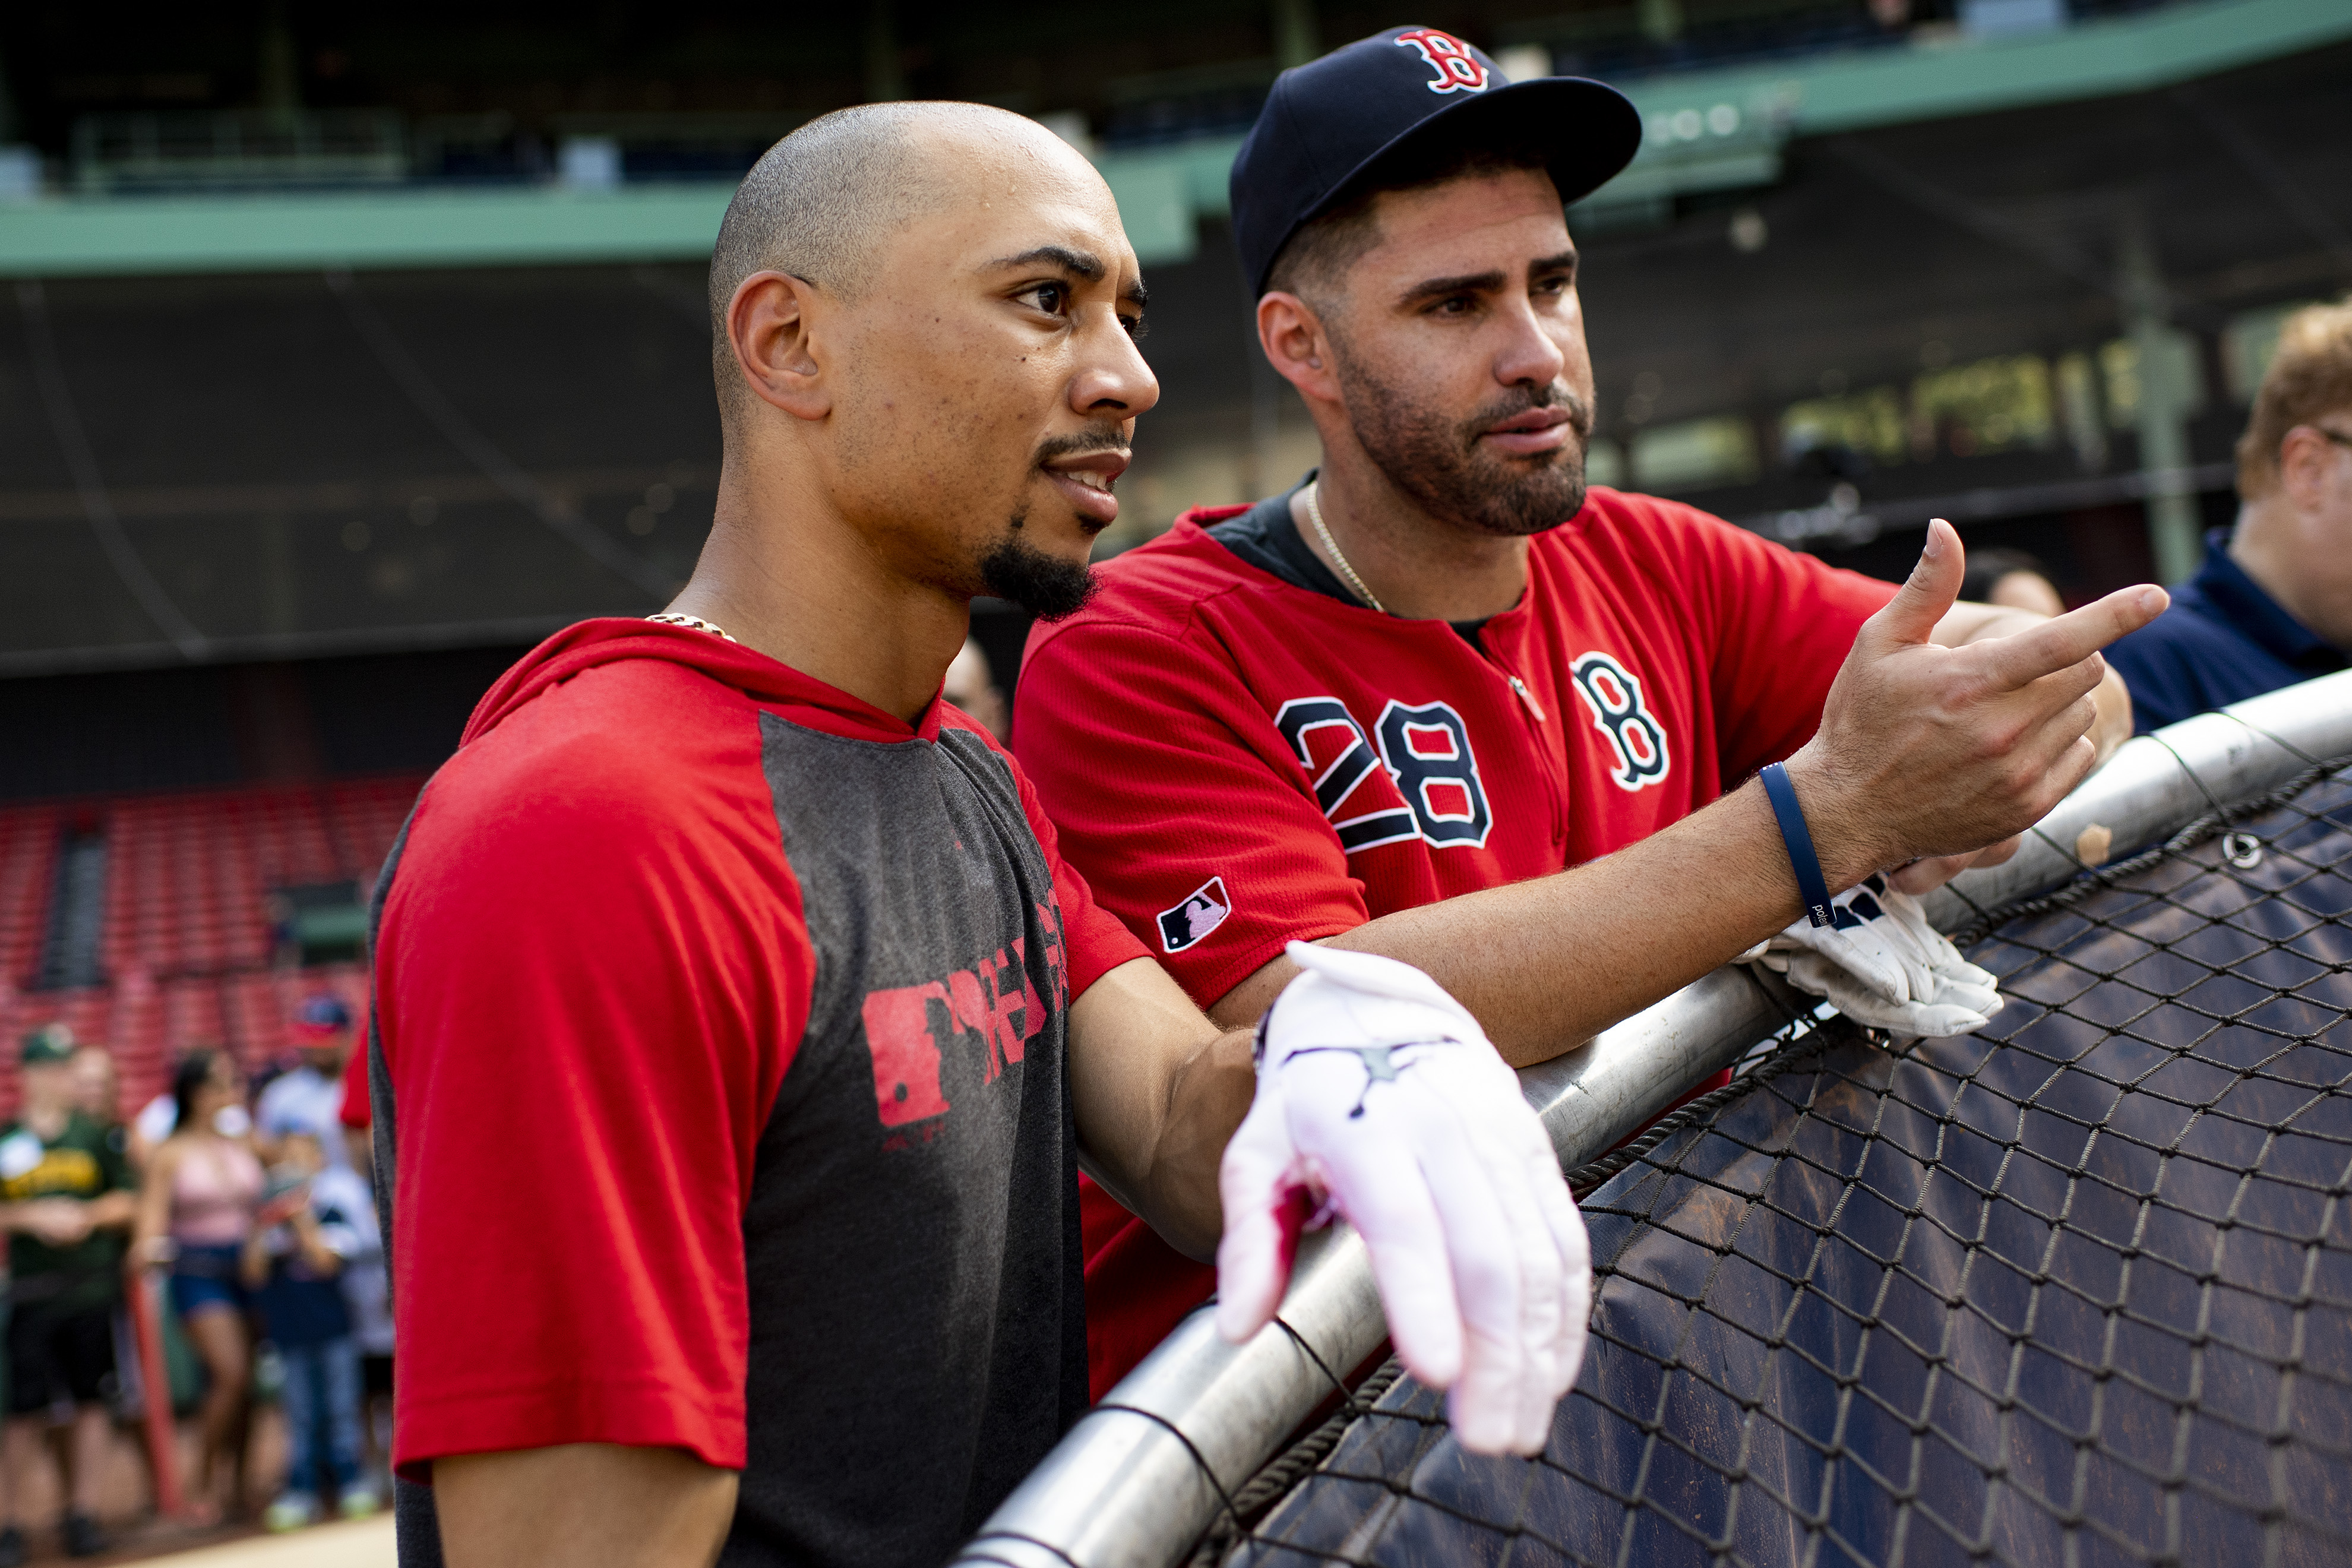 Oh no, an excellent hitter returned to the Red Sox! What ever will they do?